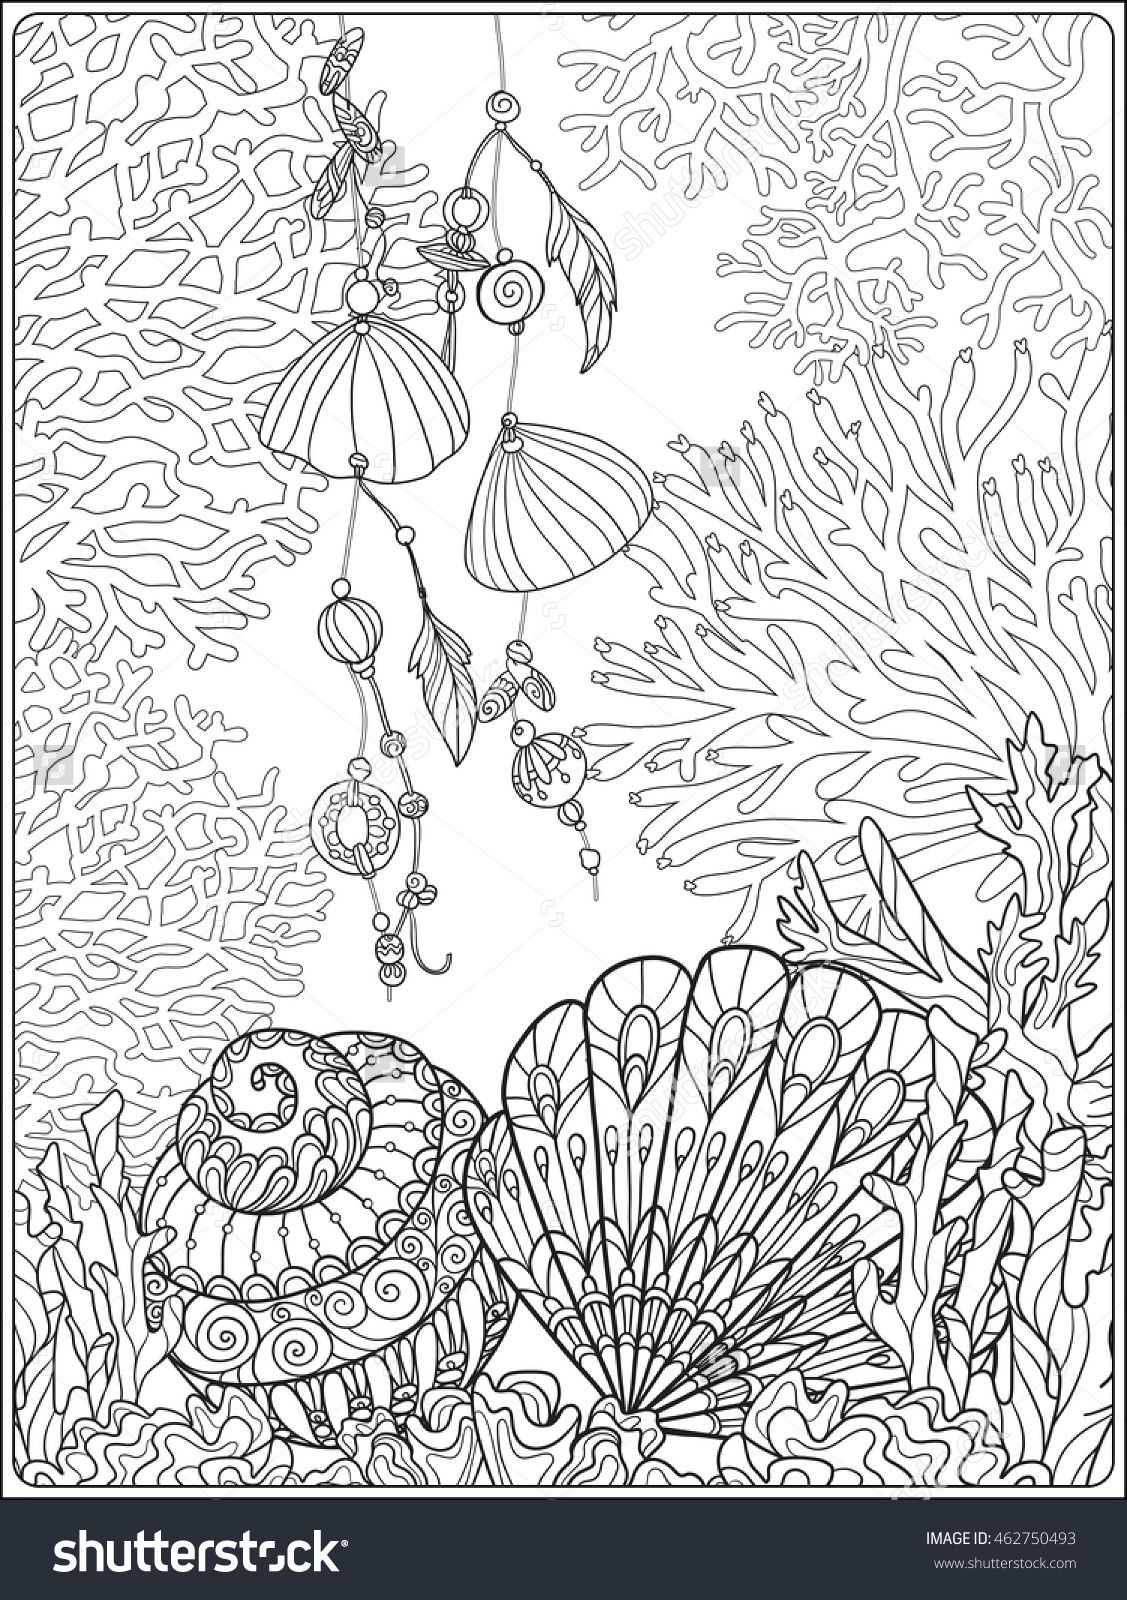 nautical coloring page zentangles colouring